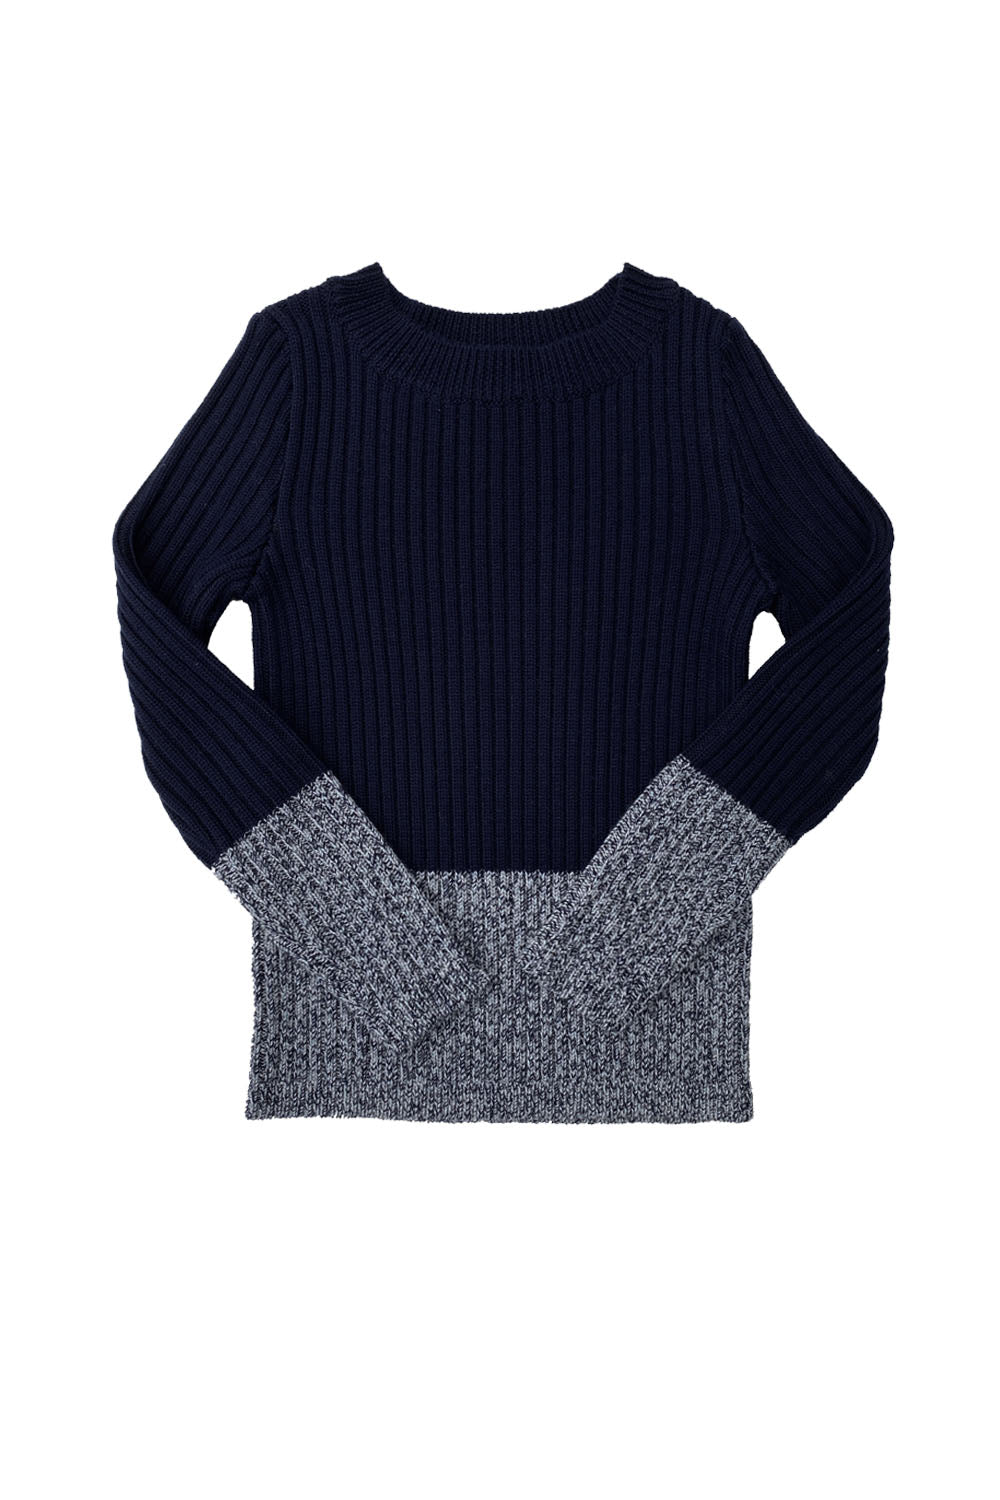 Mabli Indigo Color Block Knitted Sweater